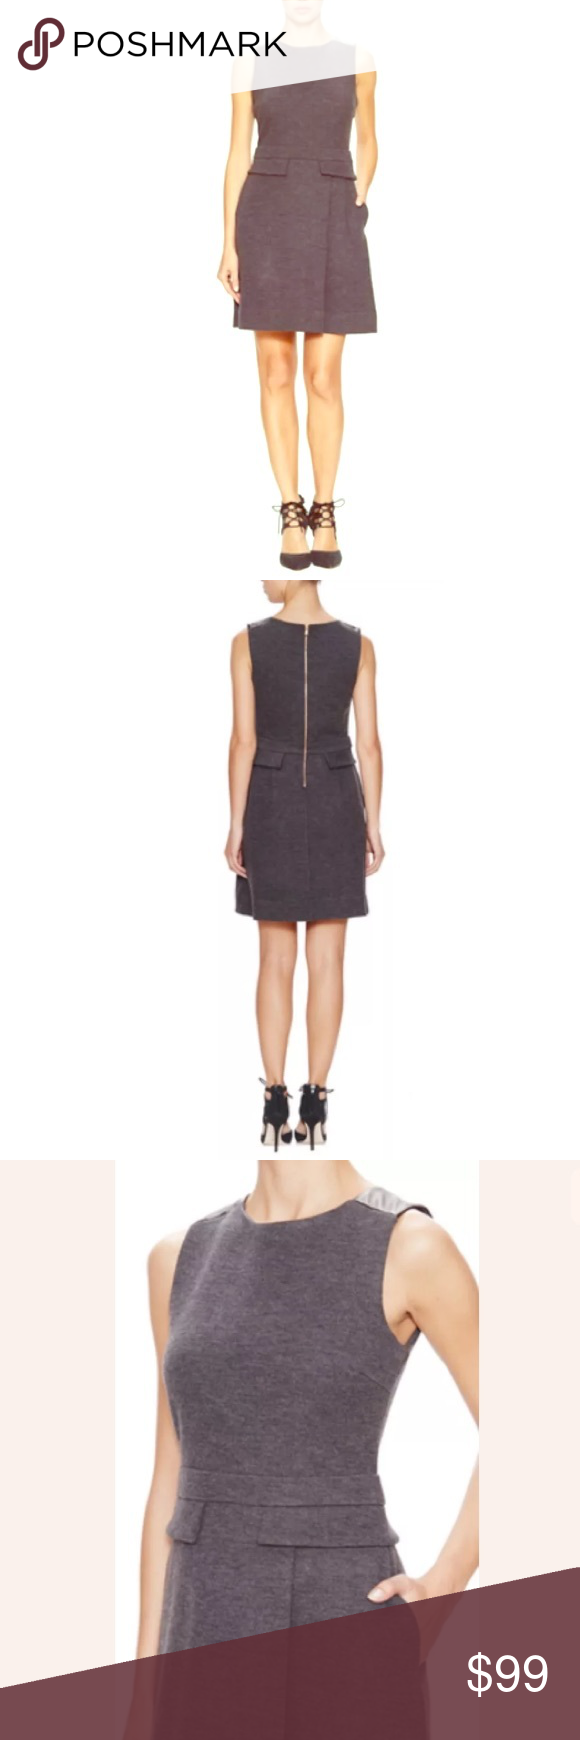 Marc Jacobs Milly Milano Wool Leather Dress Great dress for layering this fall/winter! Marc Jacobs Dresses Midi